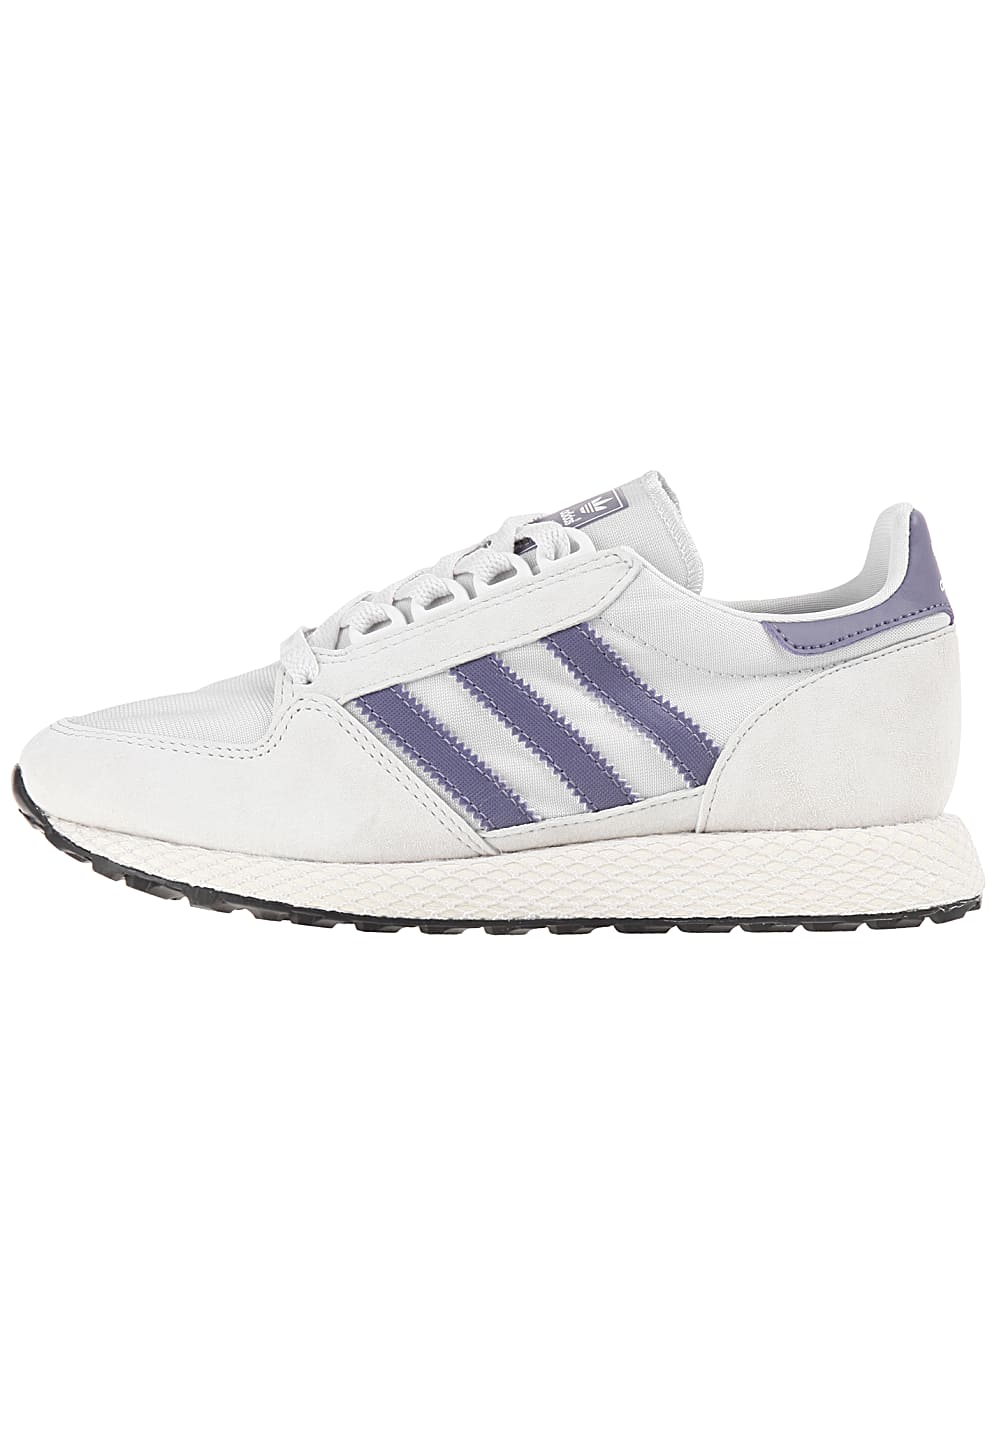 ADIDAS ORIGINALS Forest Grove - Sneakers for Women - Beige ...